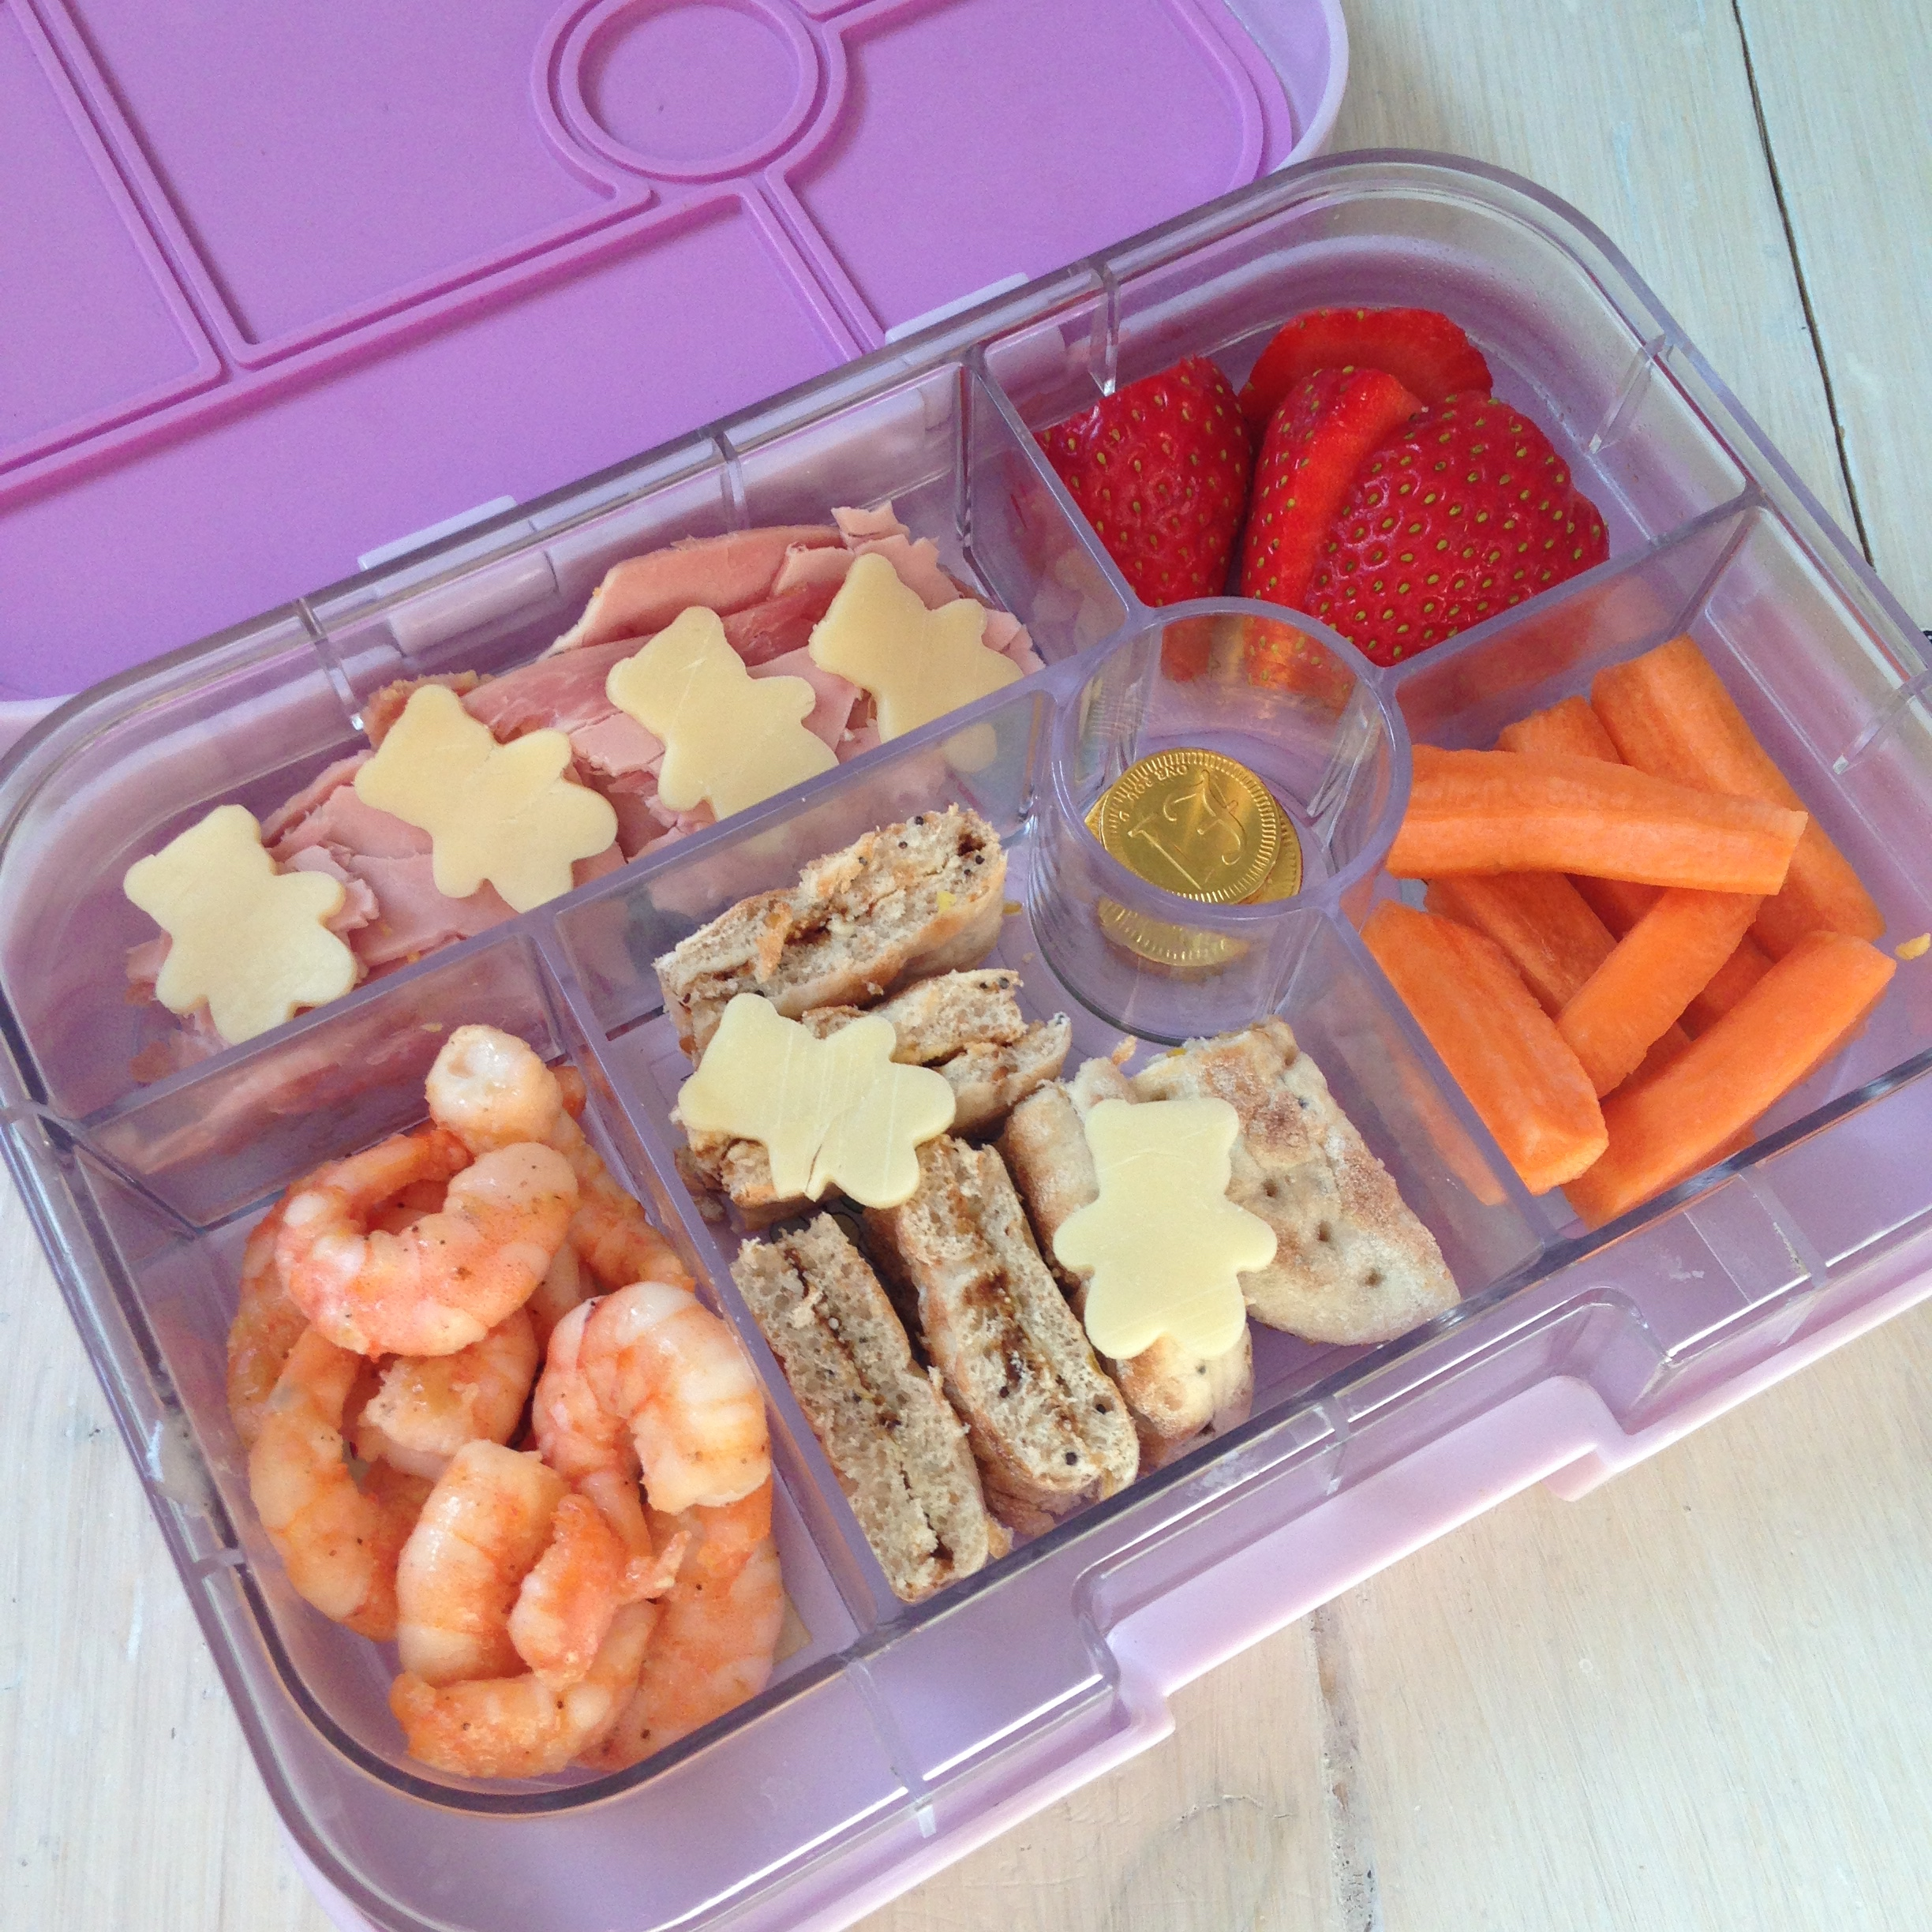 Yumbox Classic in Bahamas Pink